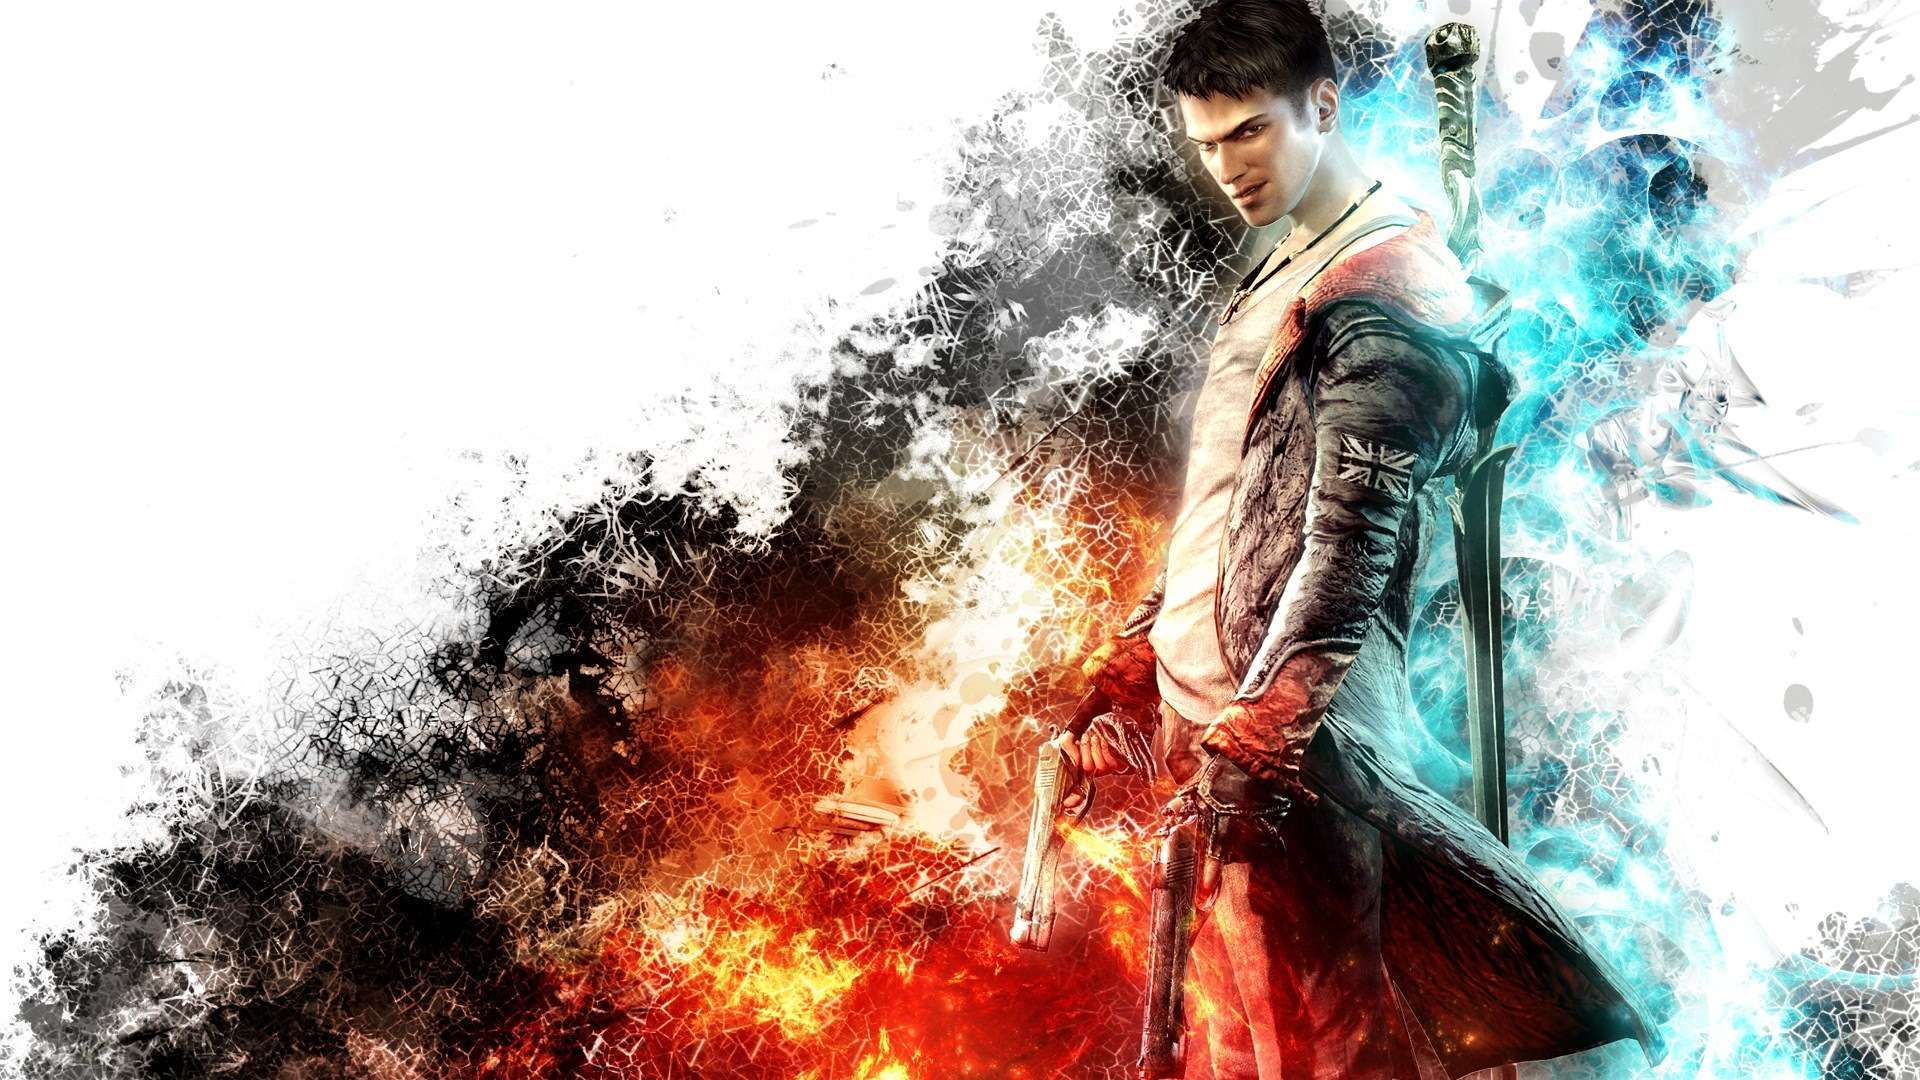 Devil May Cry Wallpapers Top Free Devil May Cry Backgrounds